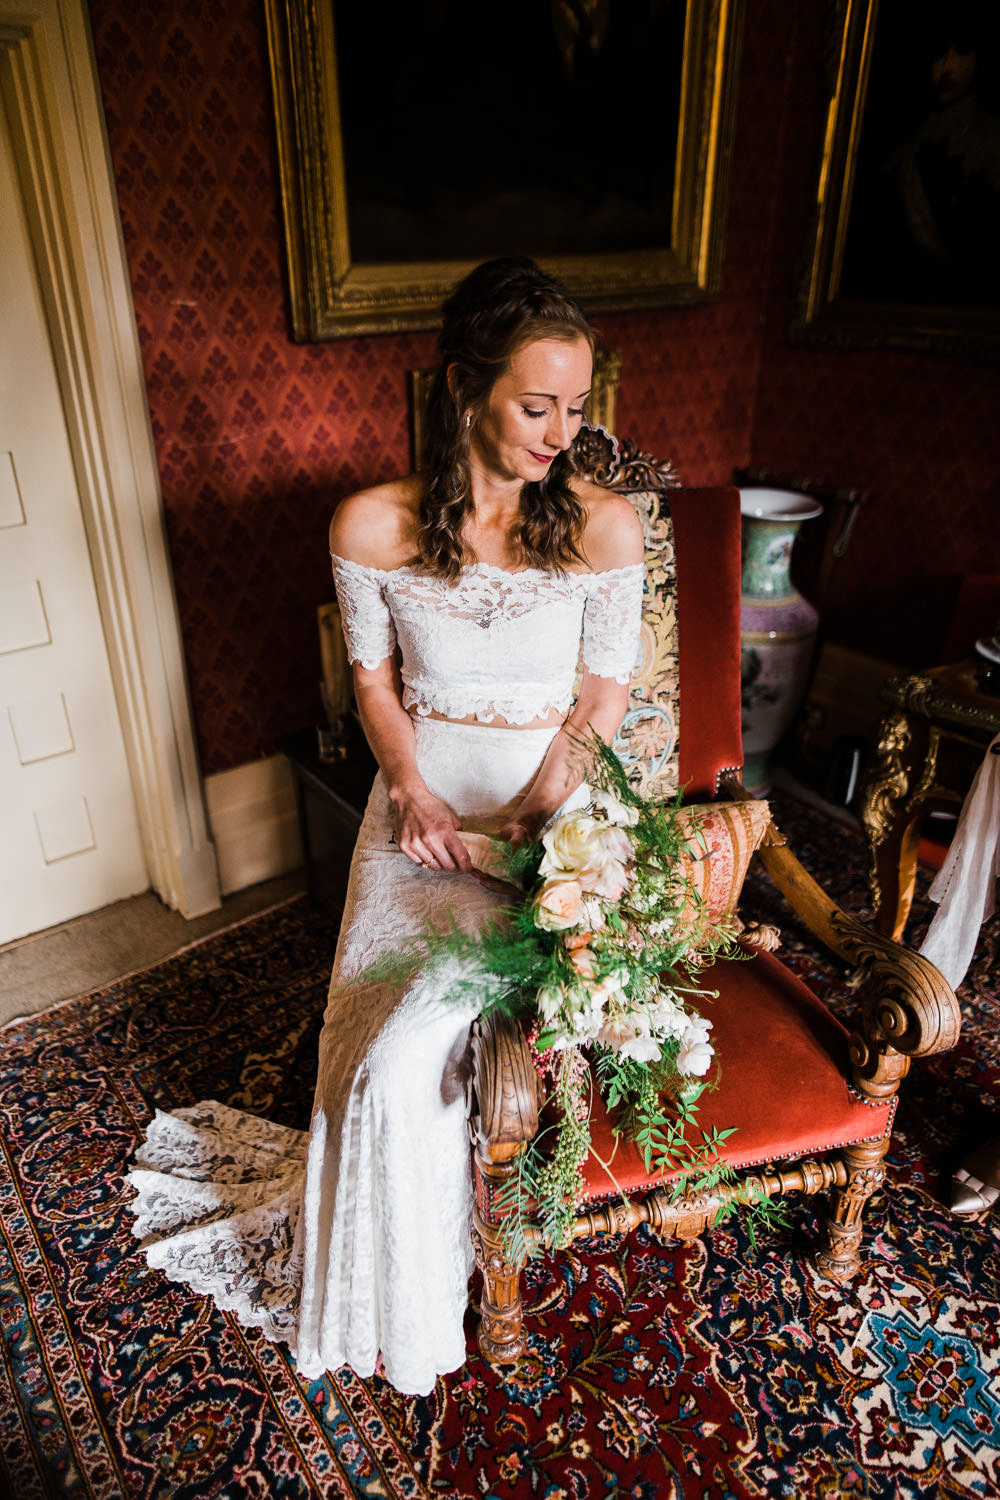 bride sat on red chair holding flowers